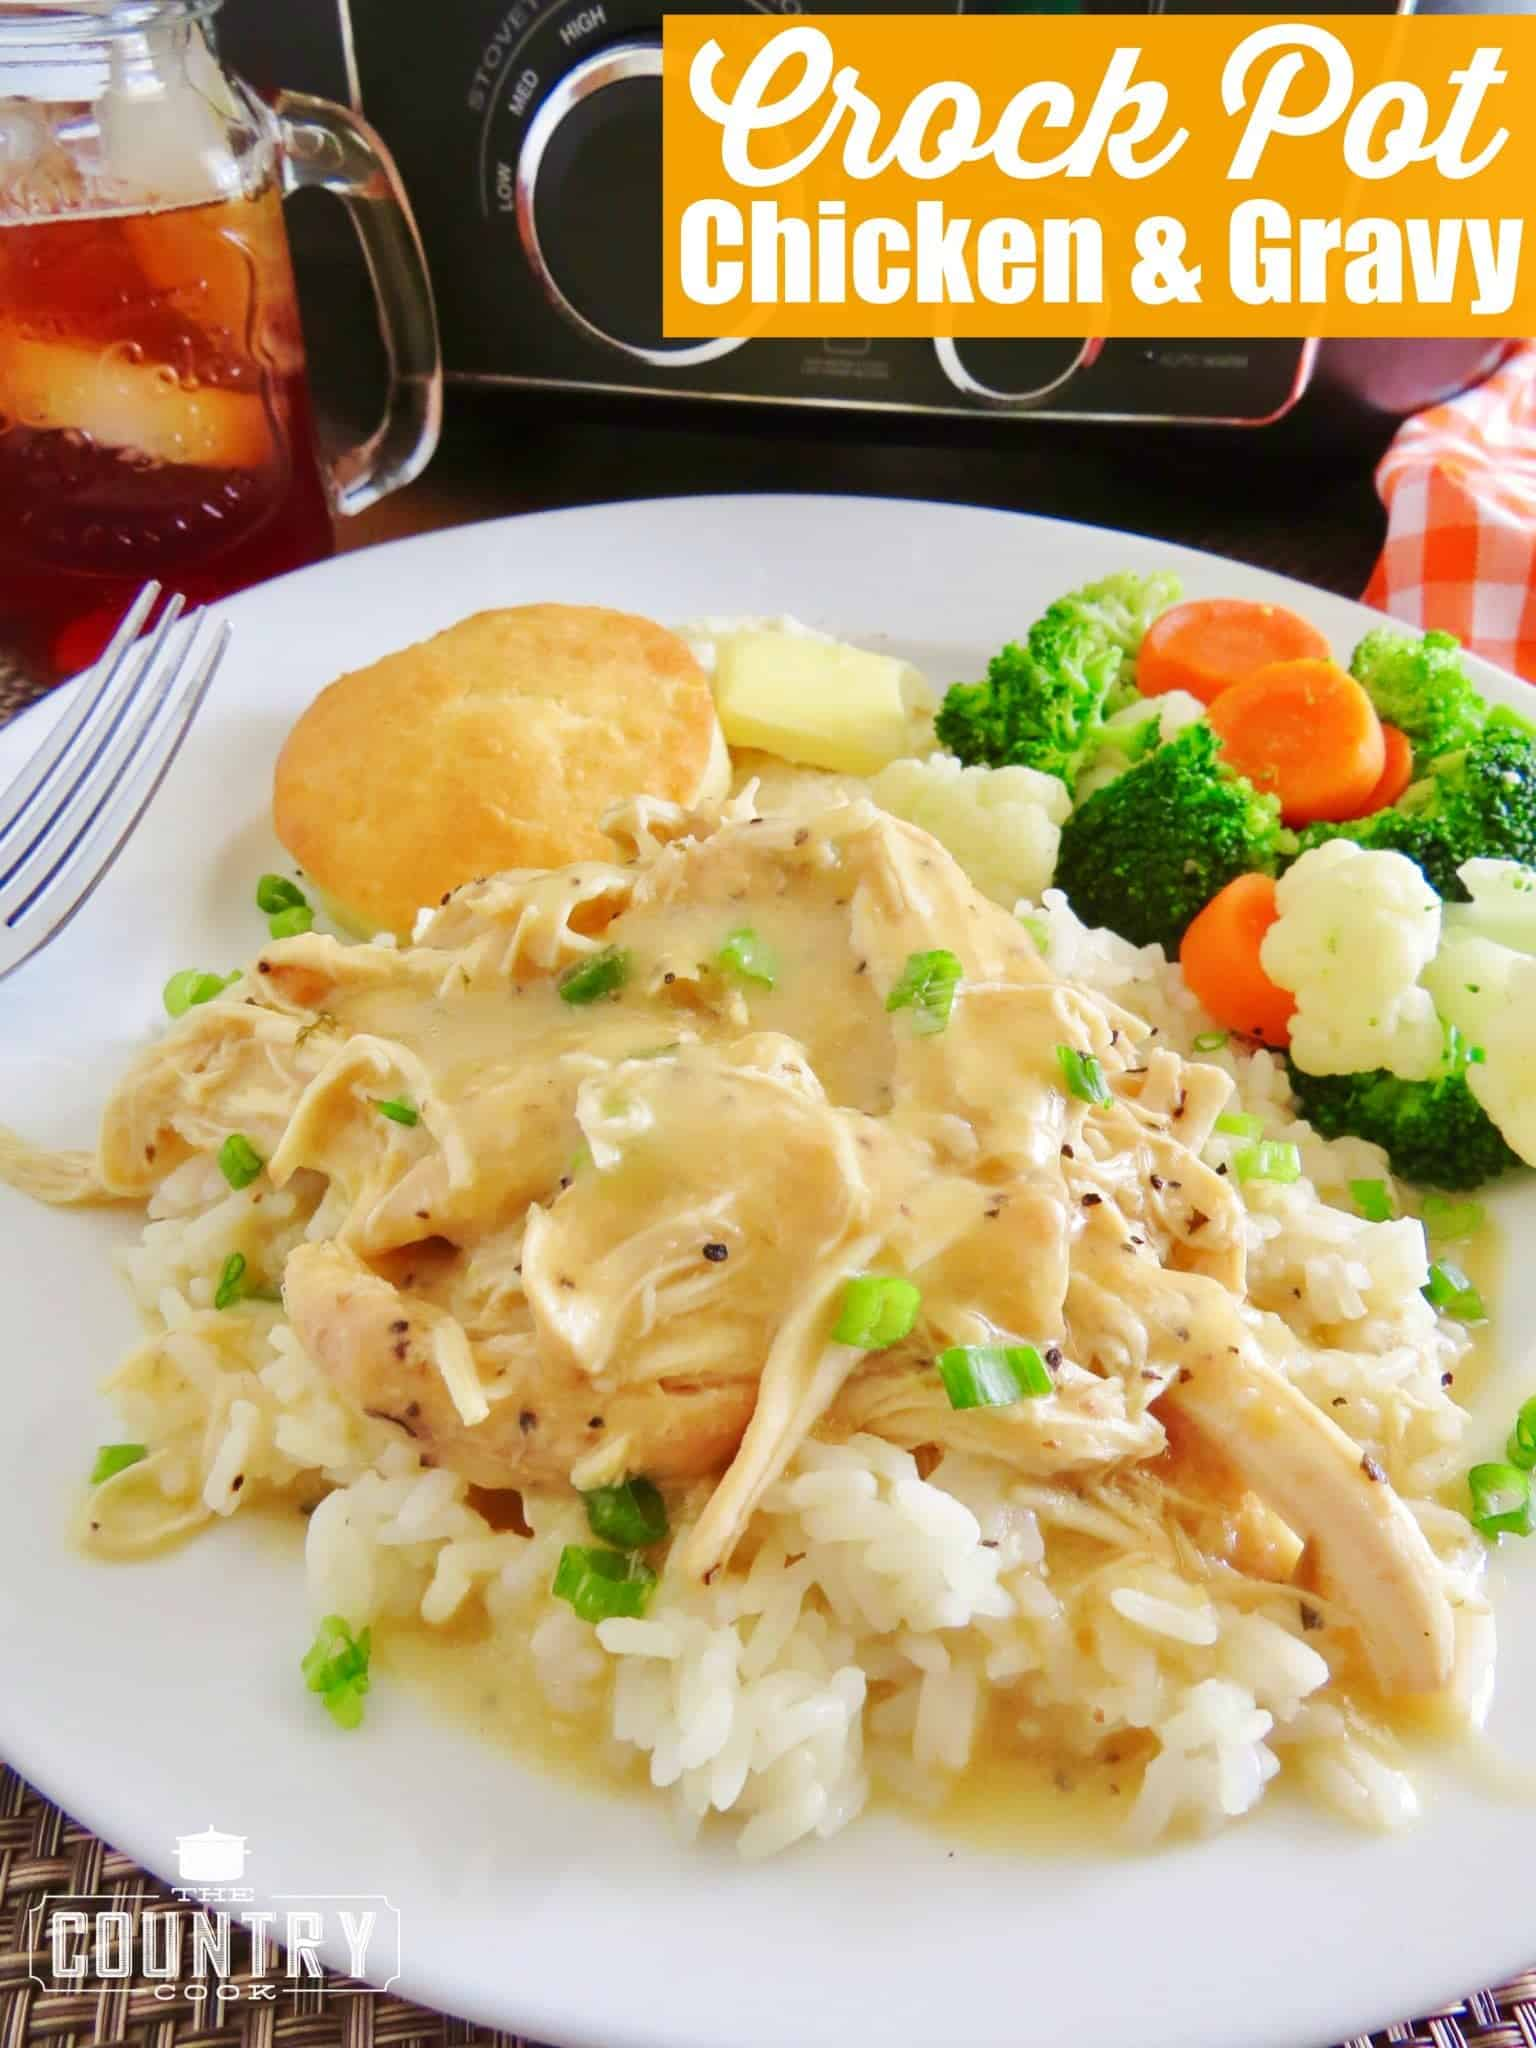 Crock pot chicken and gravy copyright the country cook crock pot chicken and gravy recipe from the country cook forumfinder Images